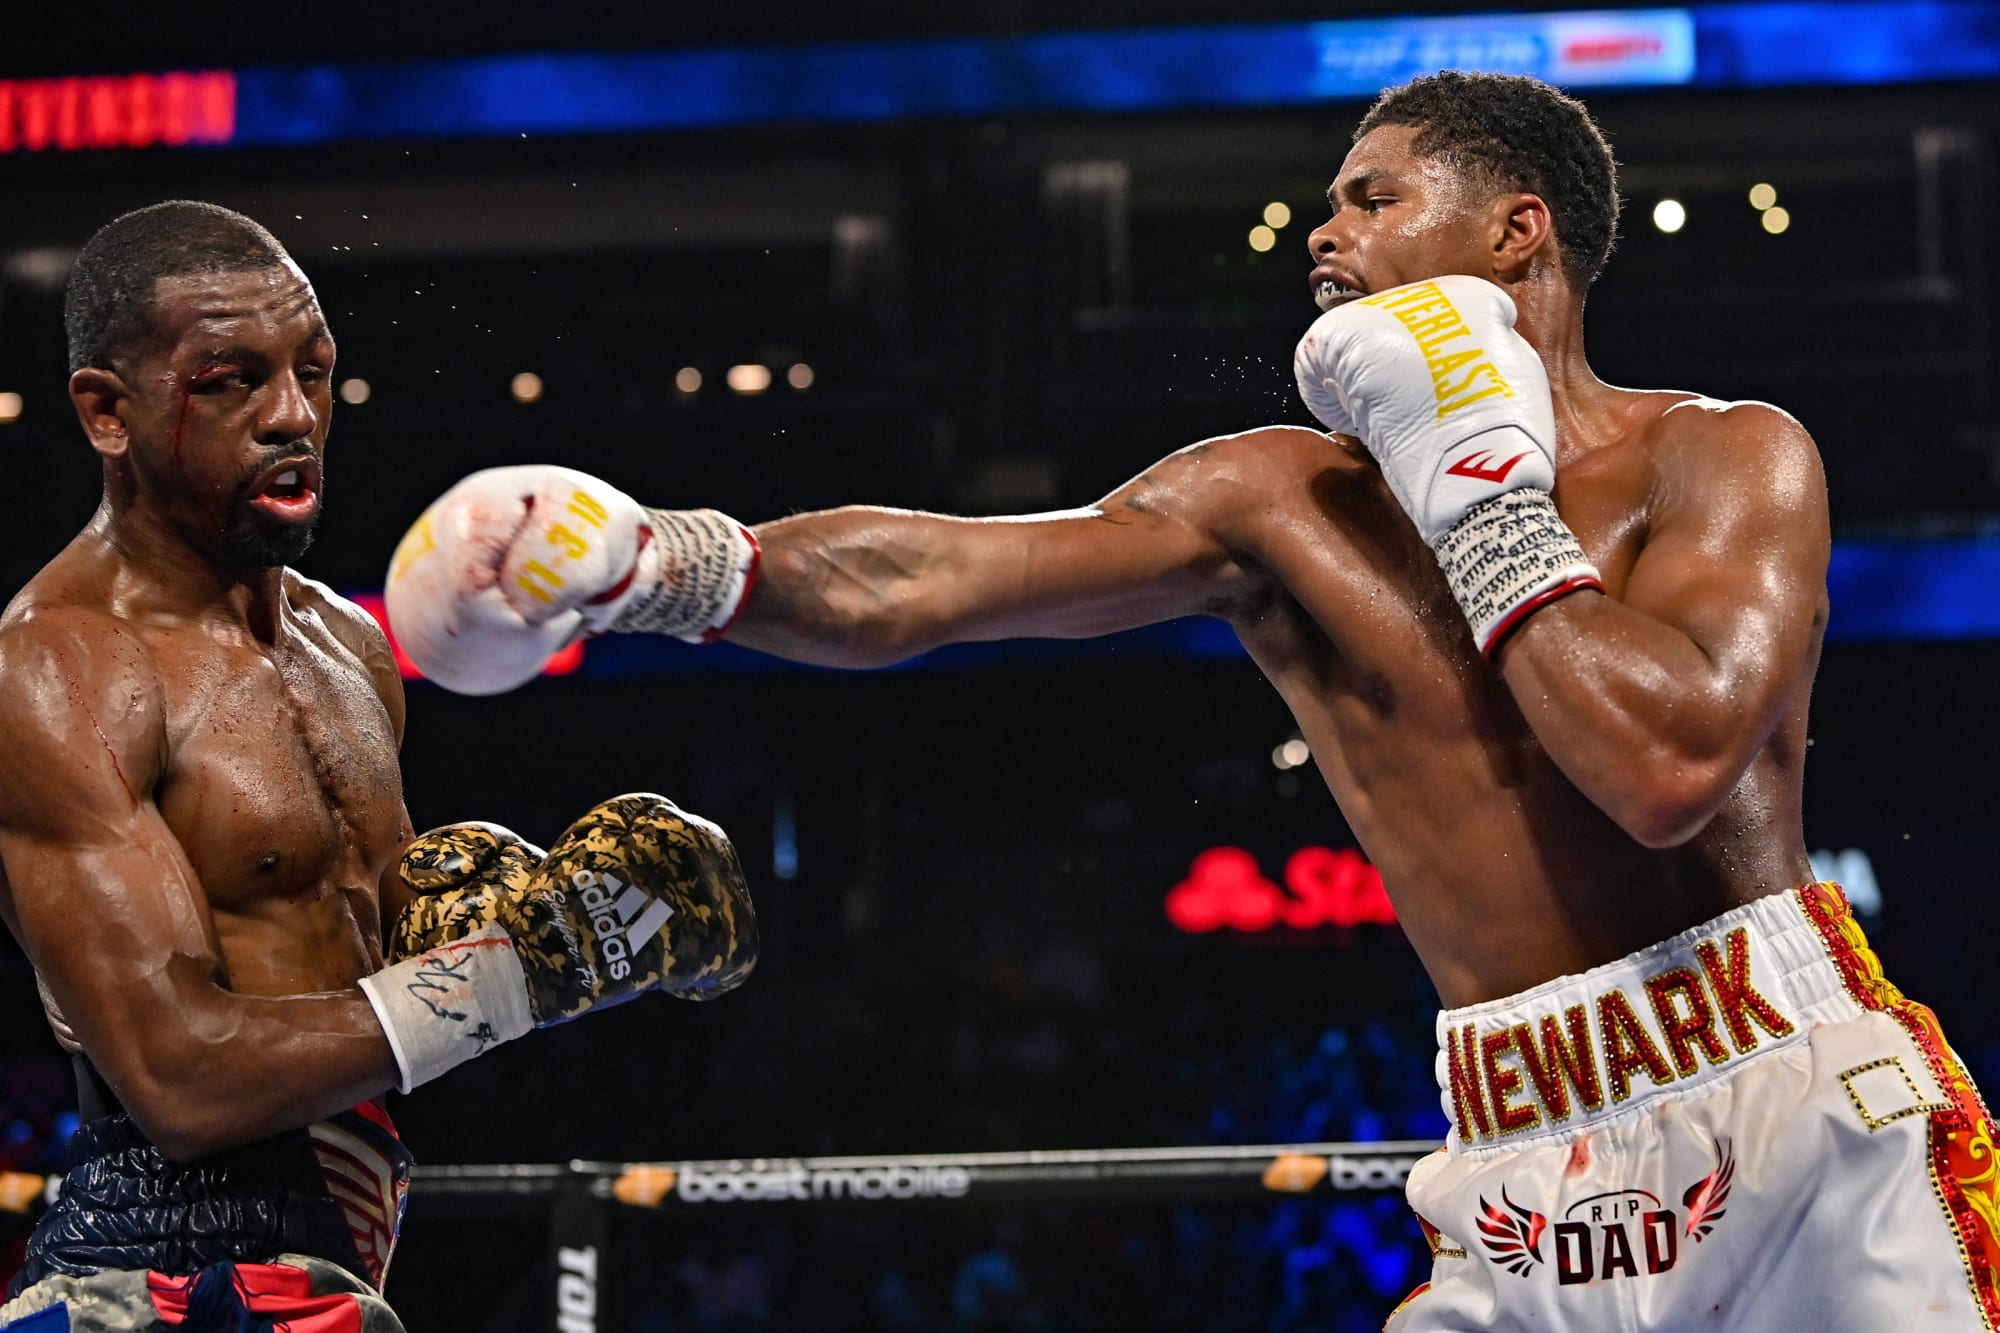 After the fight: How great can Shakur Stevenson be as a boxer?